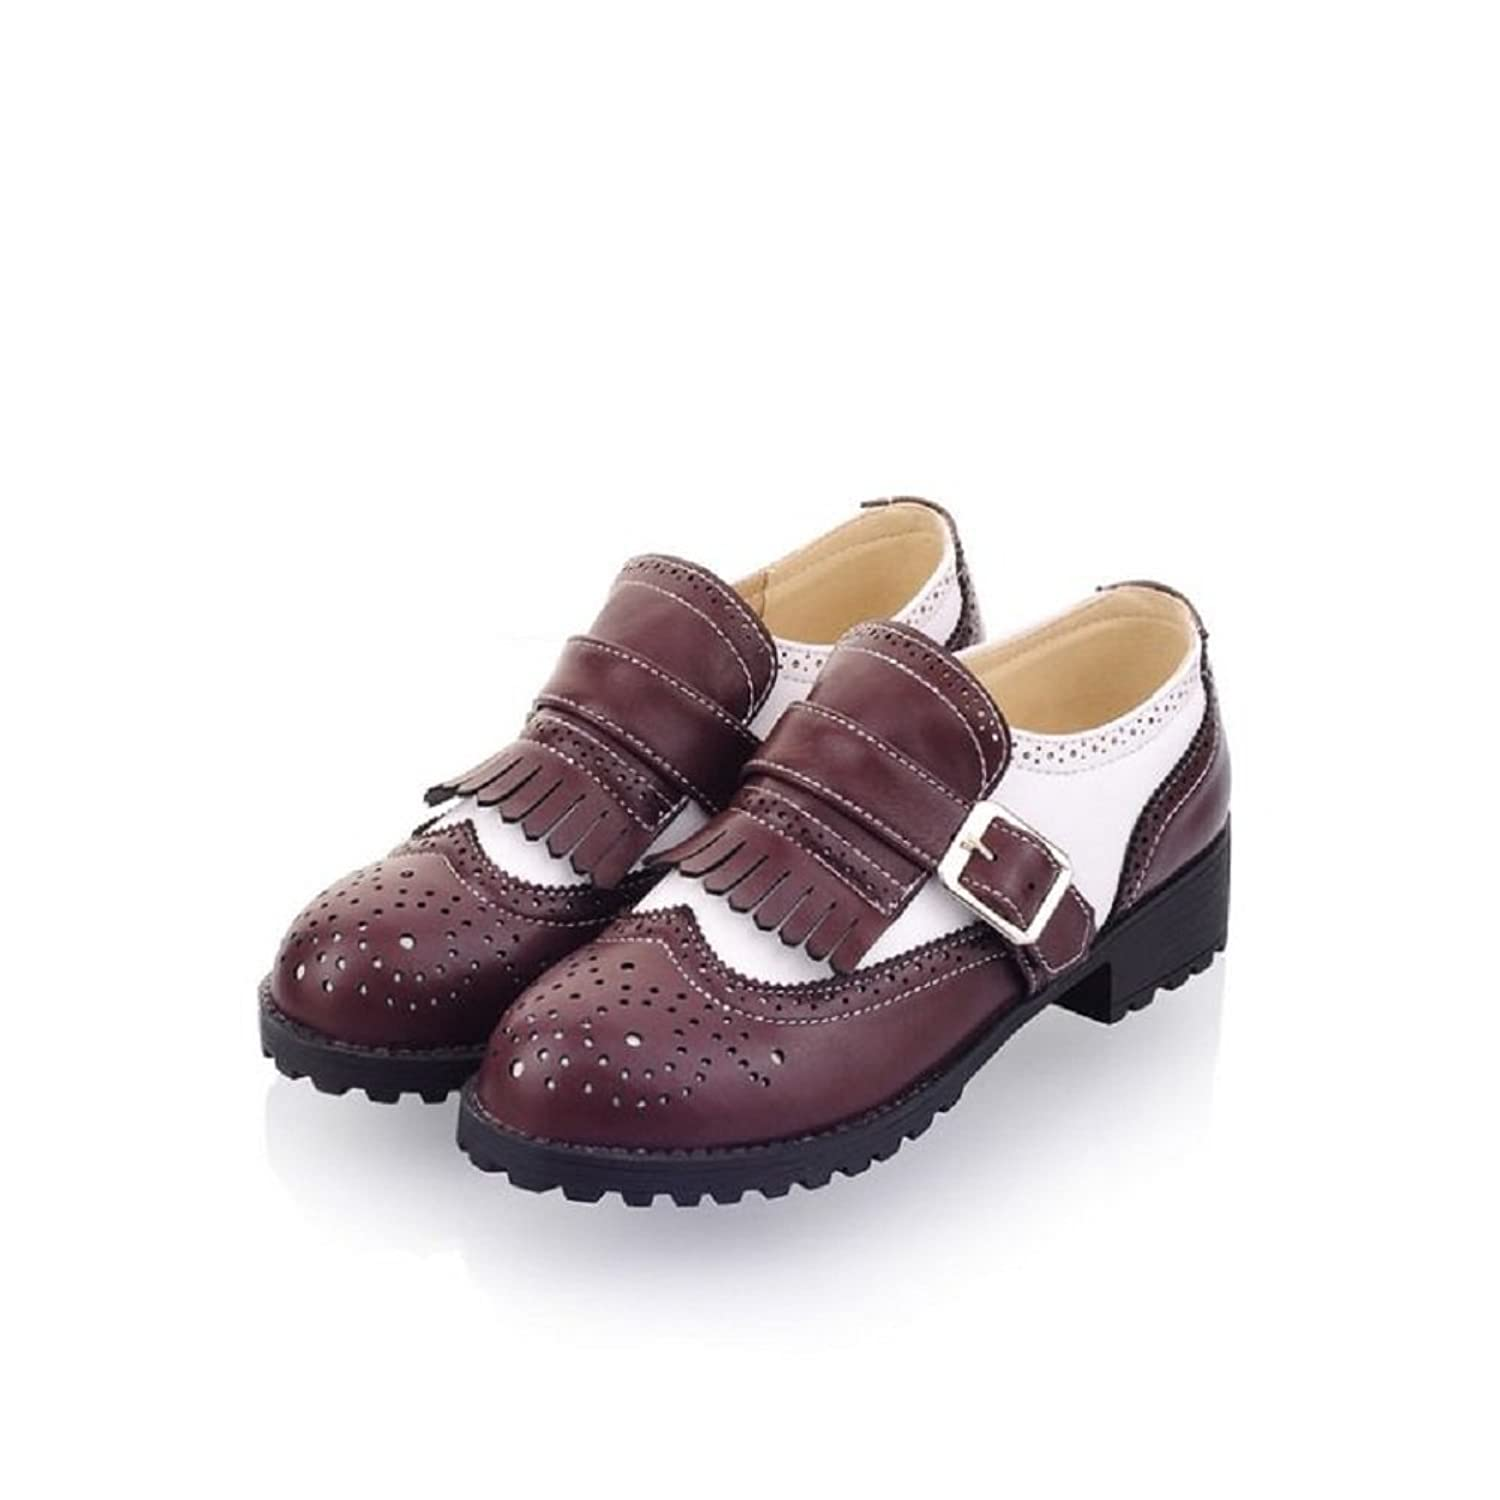 Charm Foot Fashion Womens Low Heel Casual Shoes Oxfords Shoes